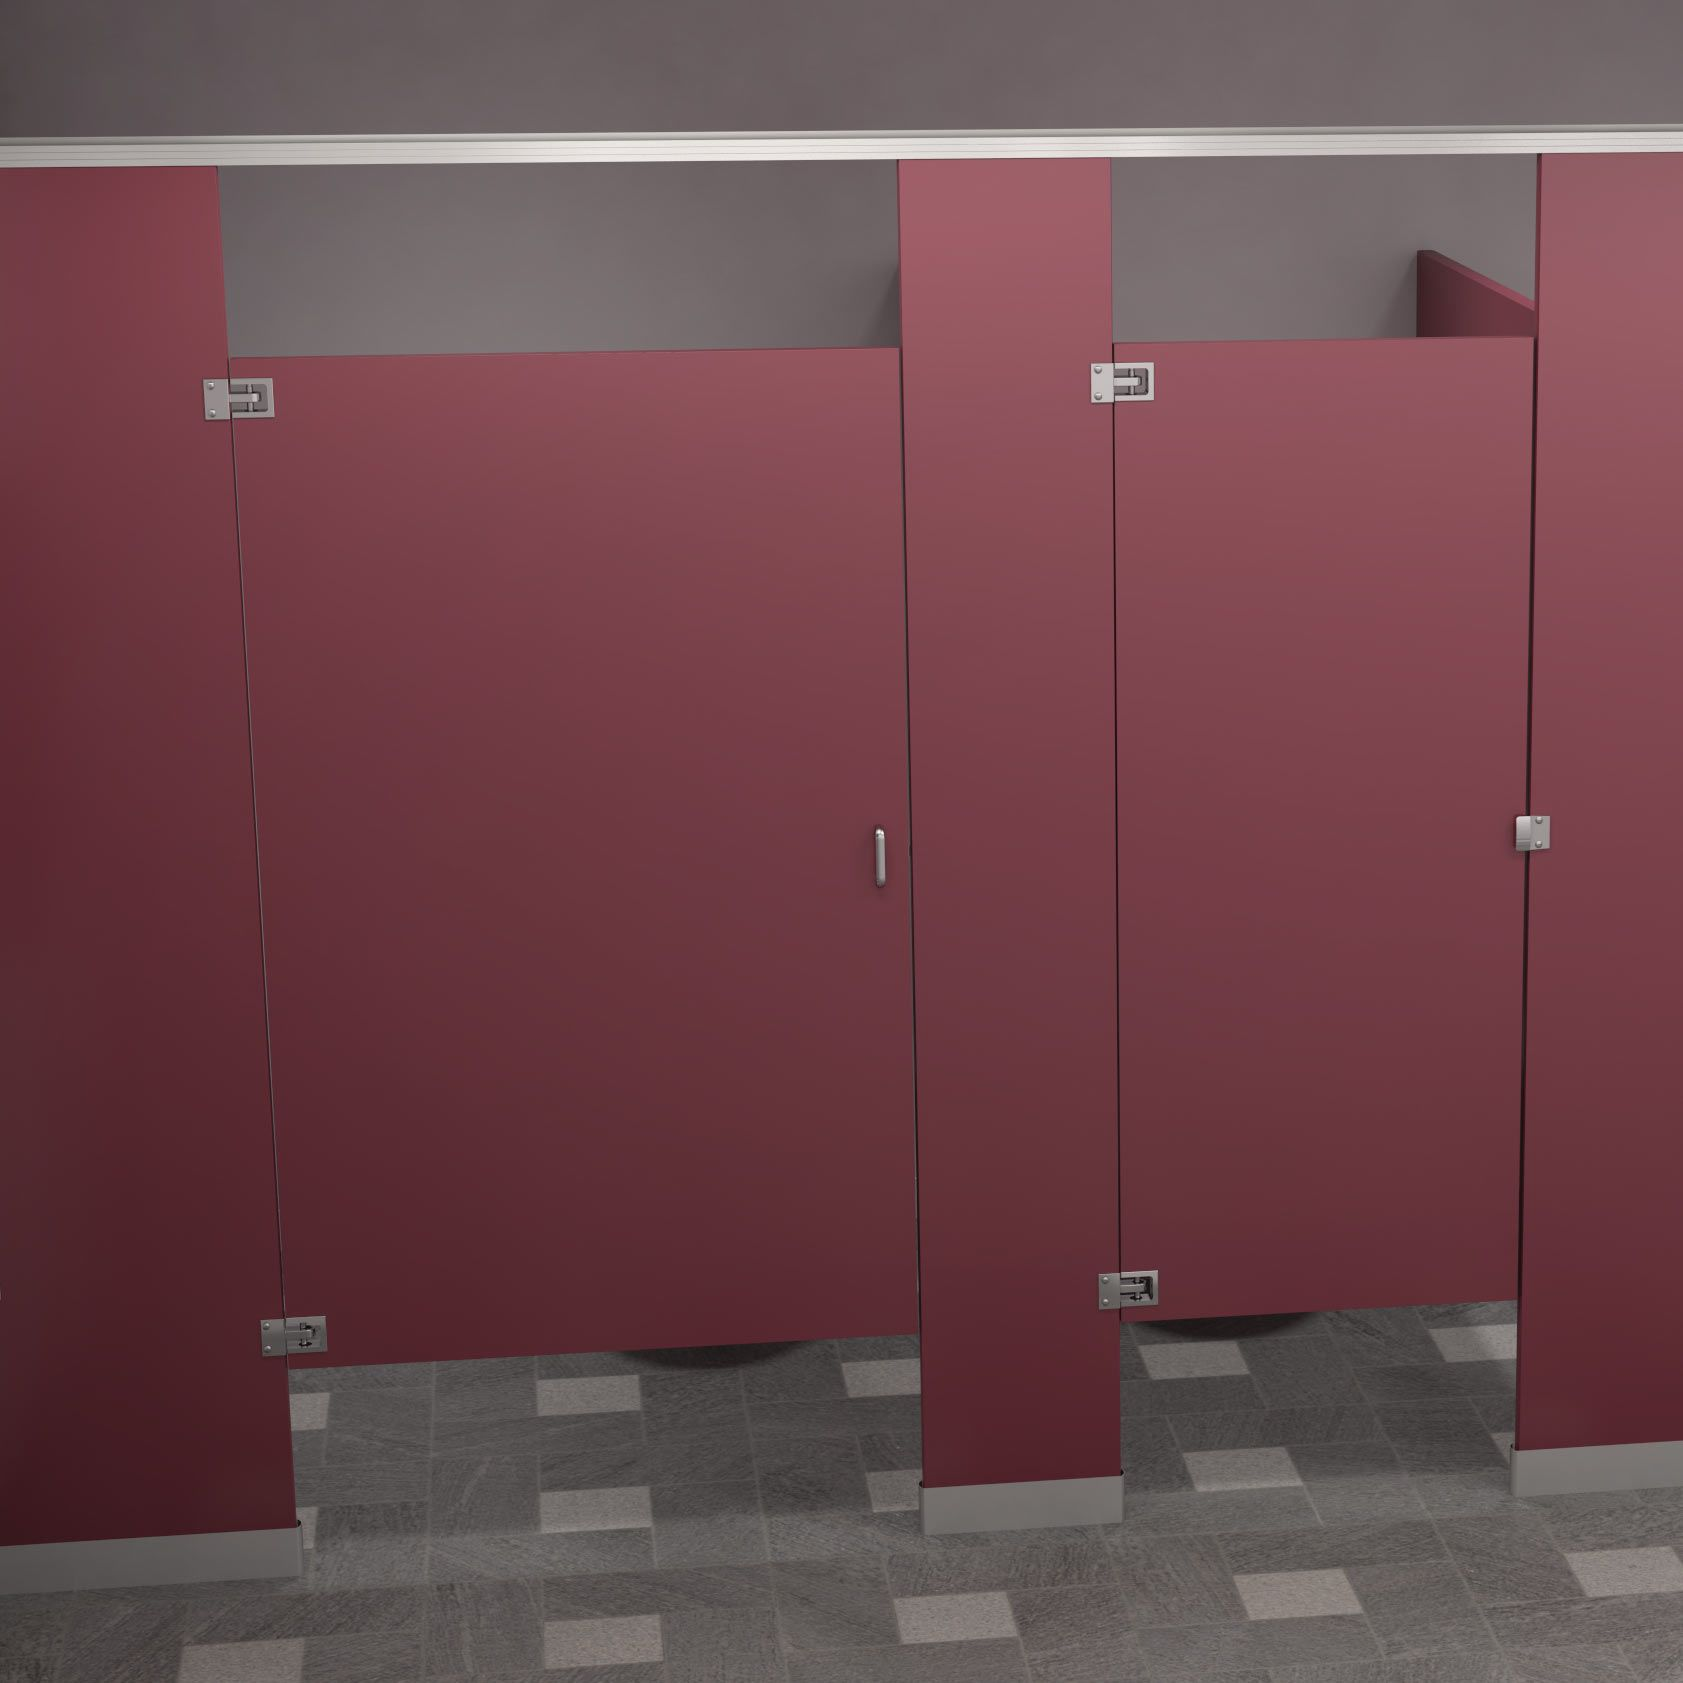 Code materials for public restroom compartments are